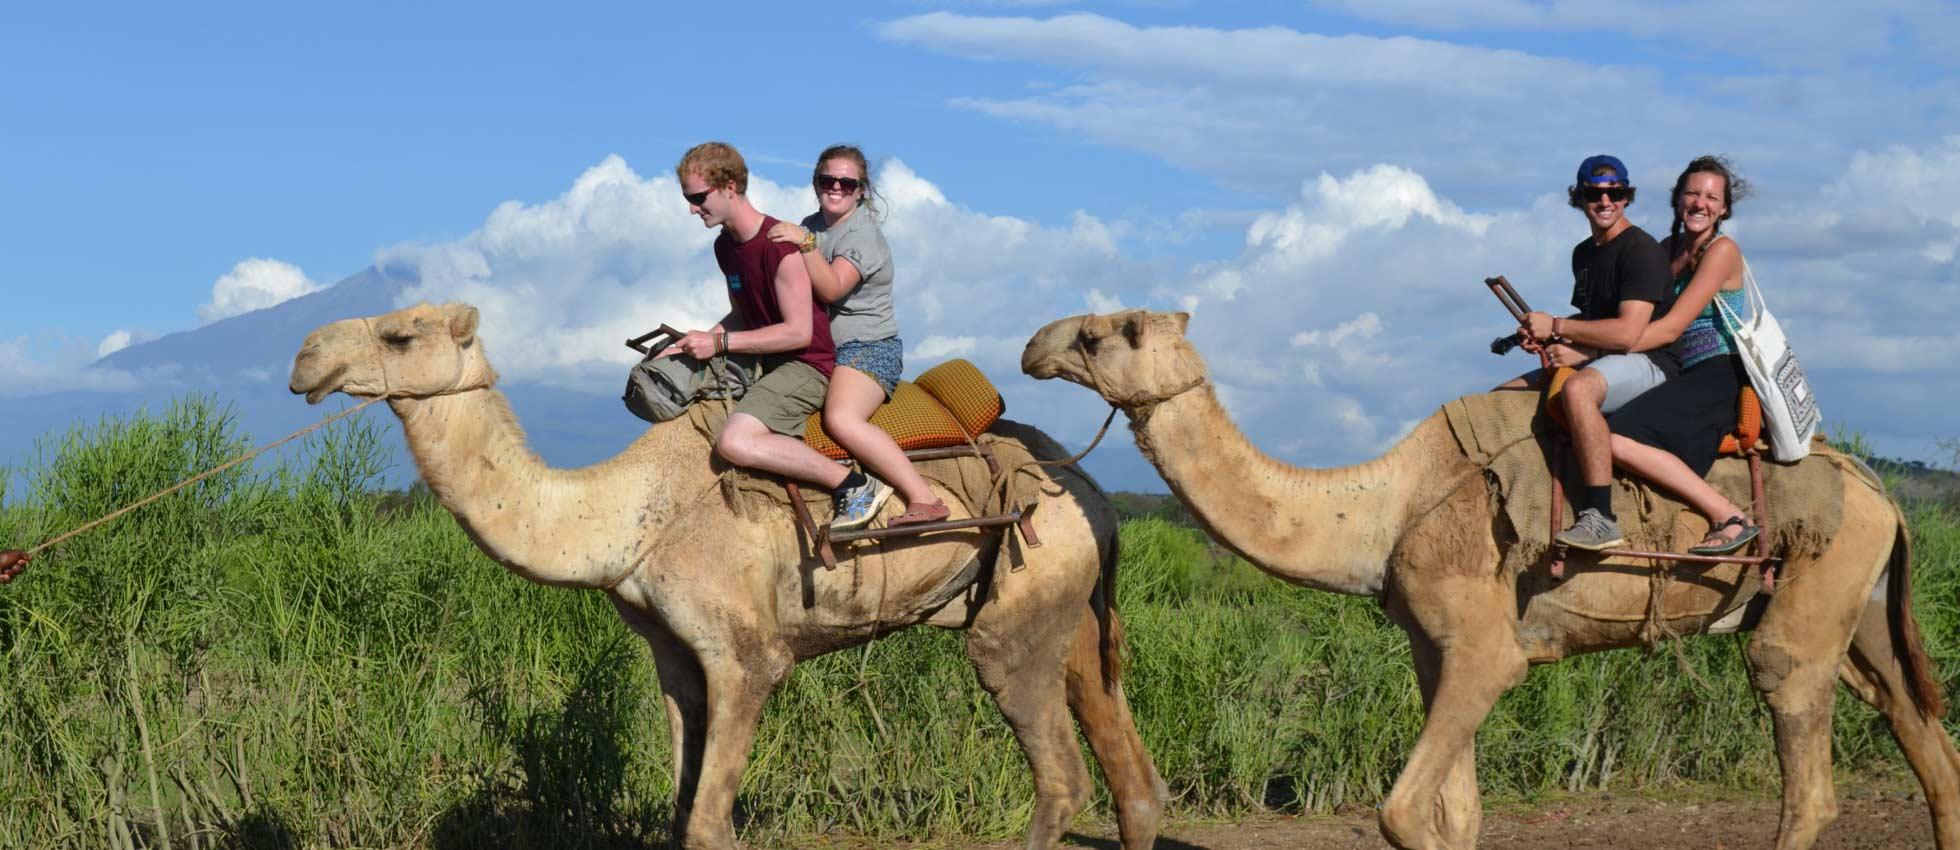 ARCC Gap Year - Students Riding Camels